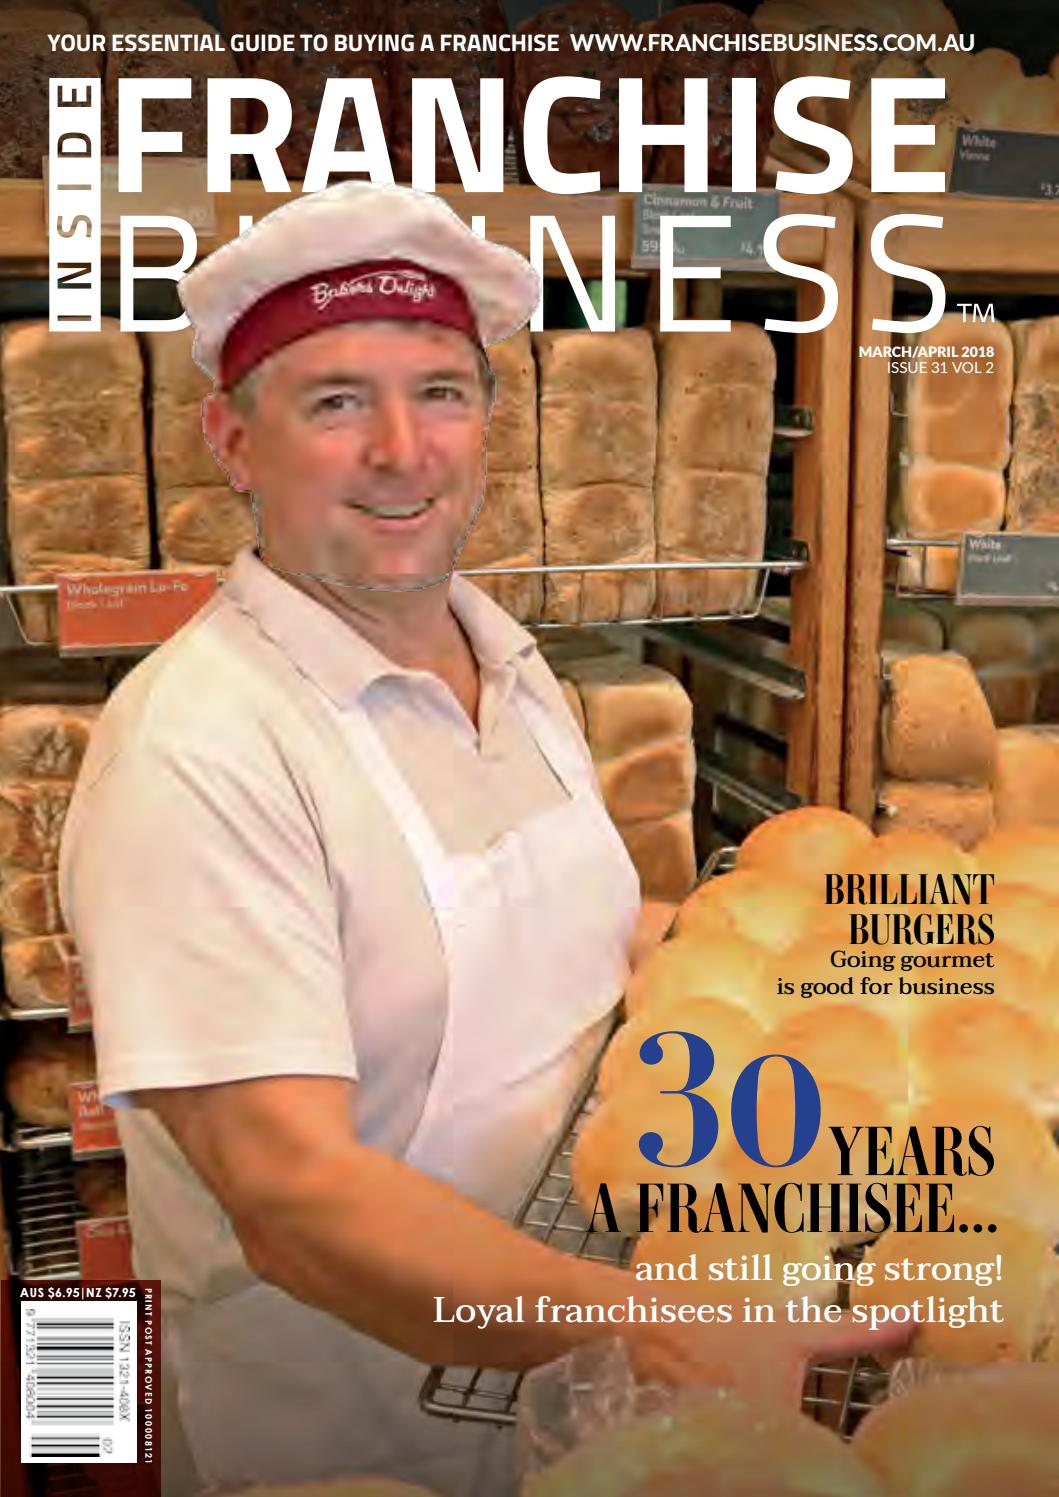 Inside Franchise Business - Mar/Apr 2018 by Octomedia Pty